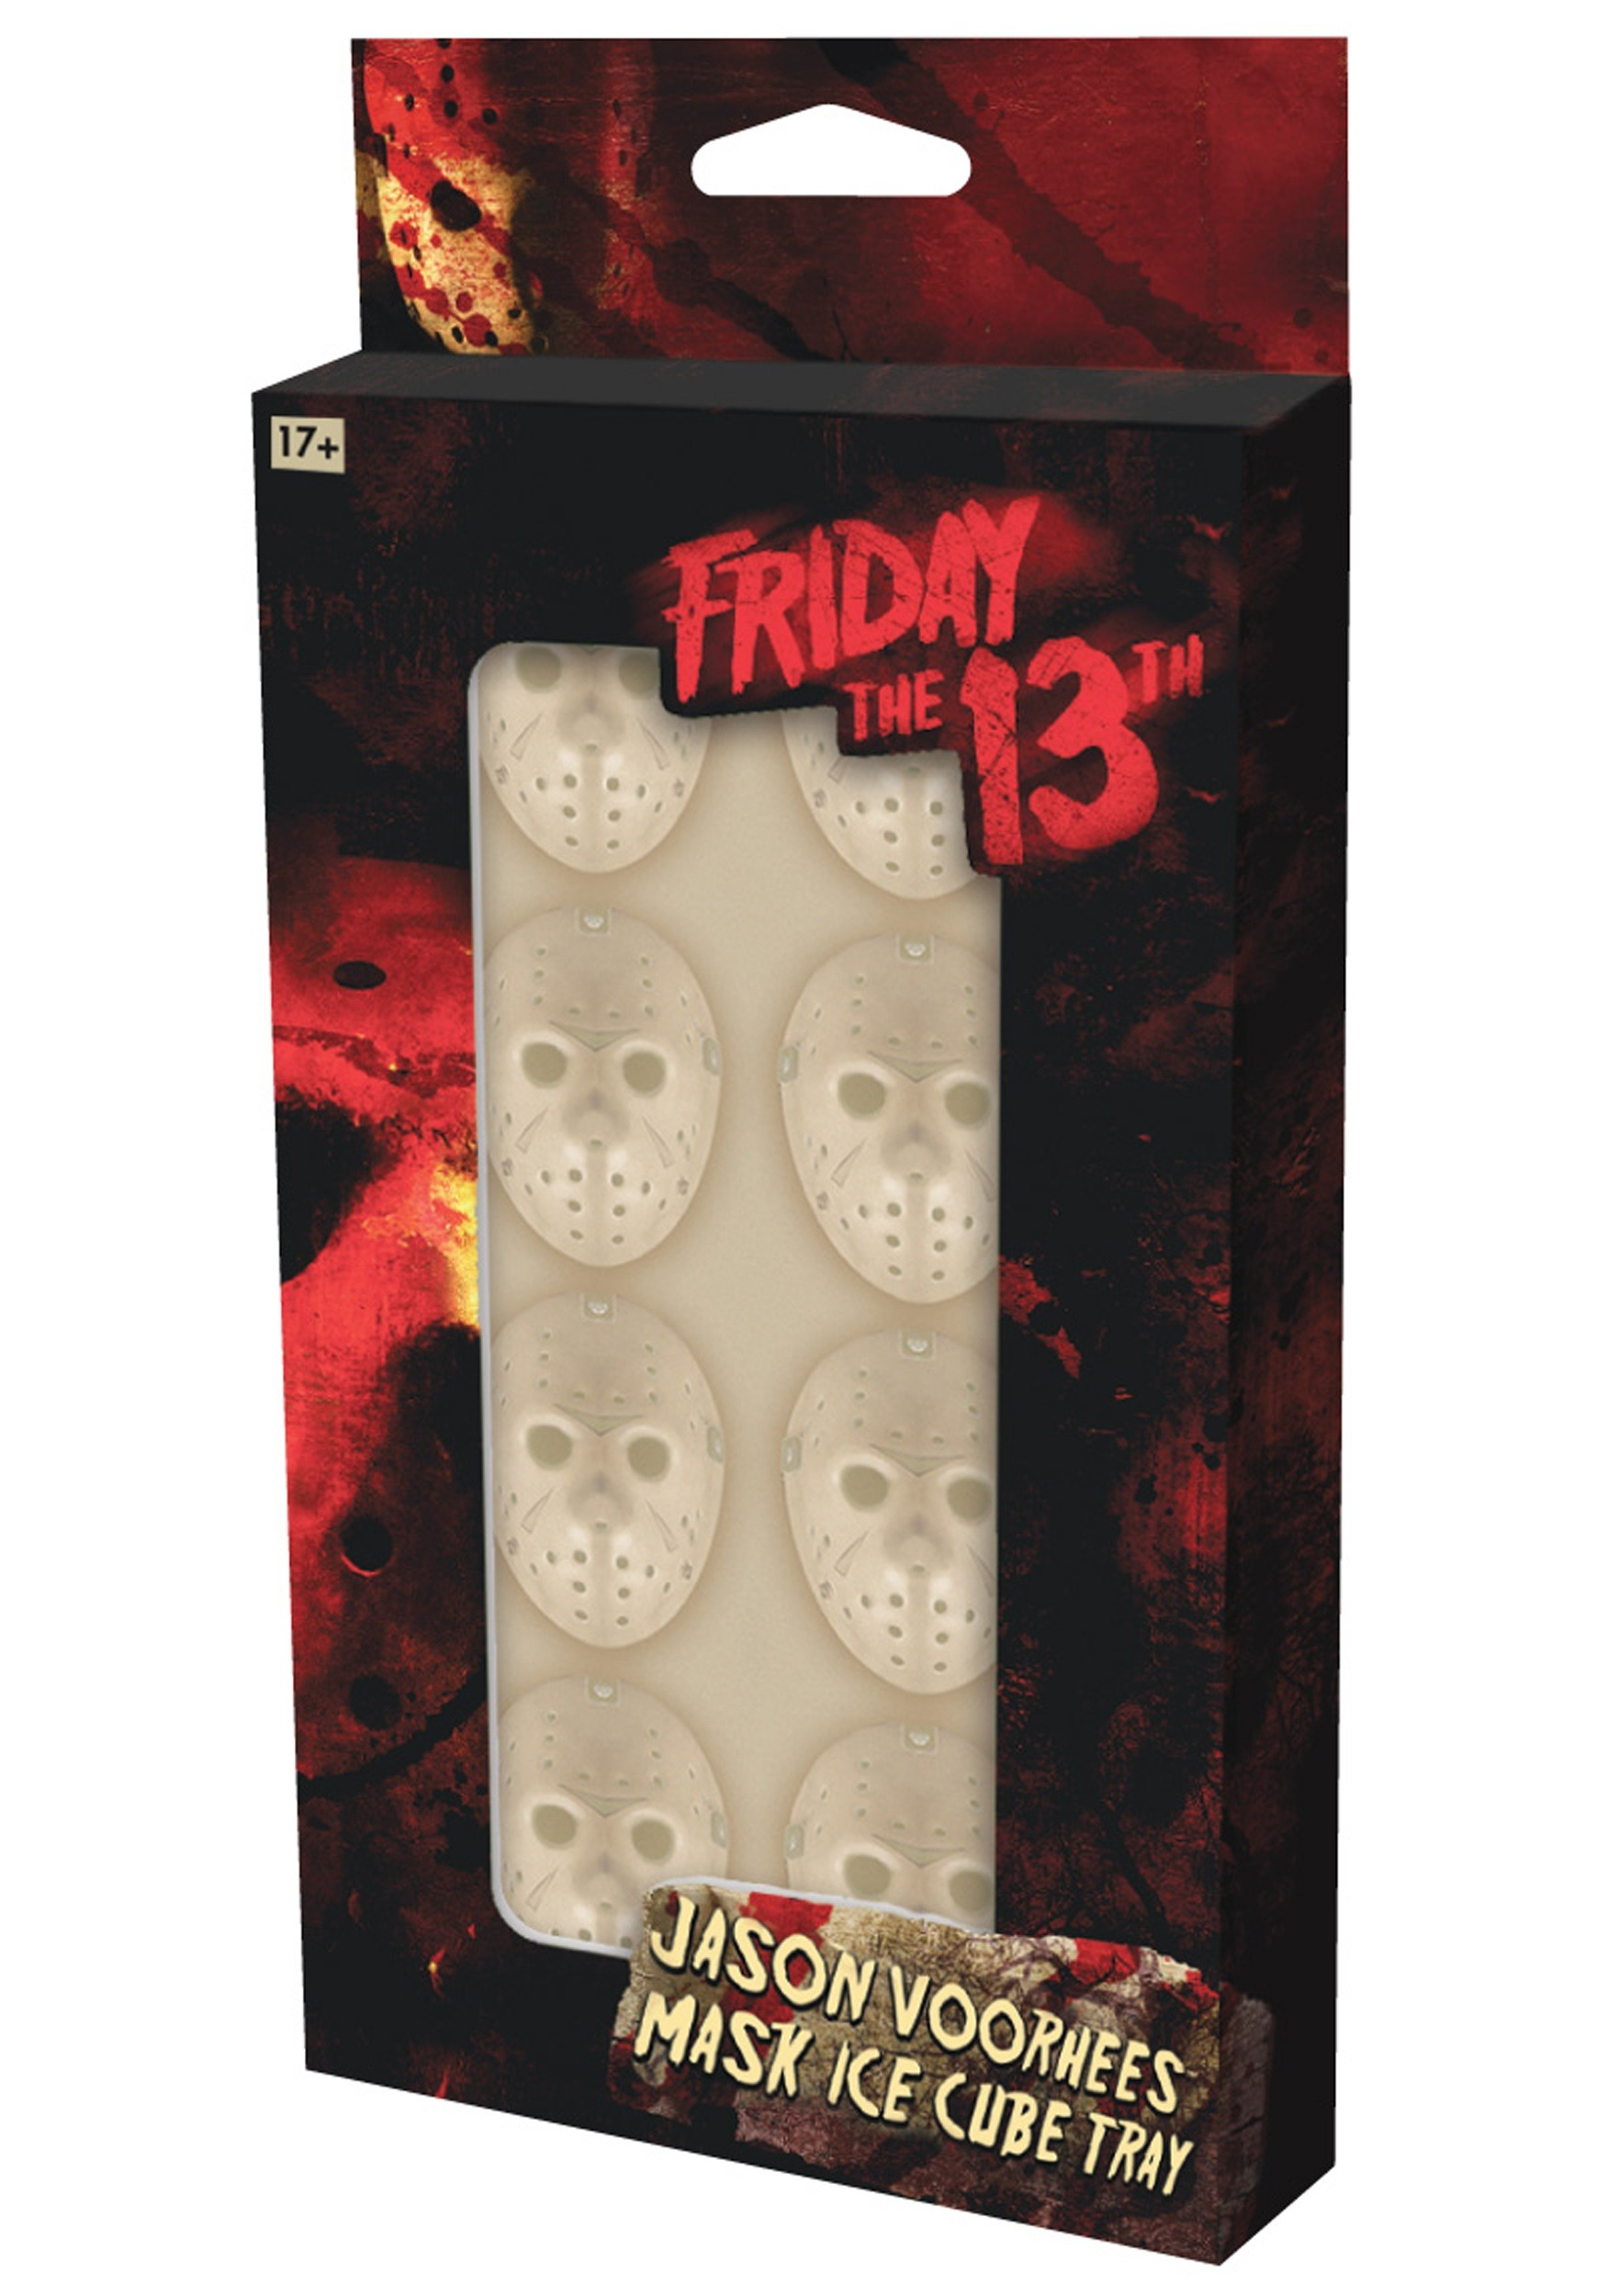 Jason Voorhees Mask Ice Cube Tray Friday the 13th